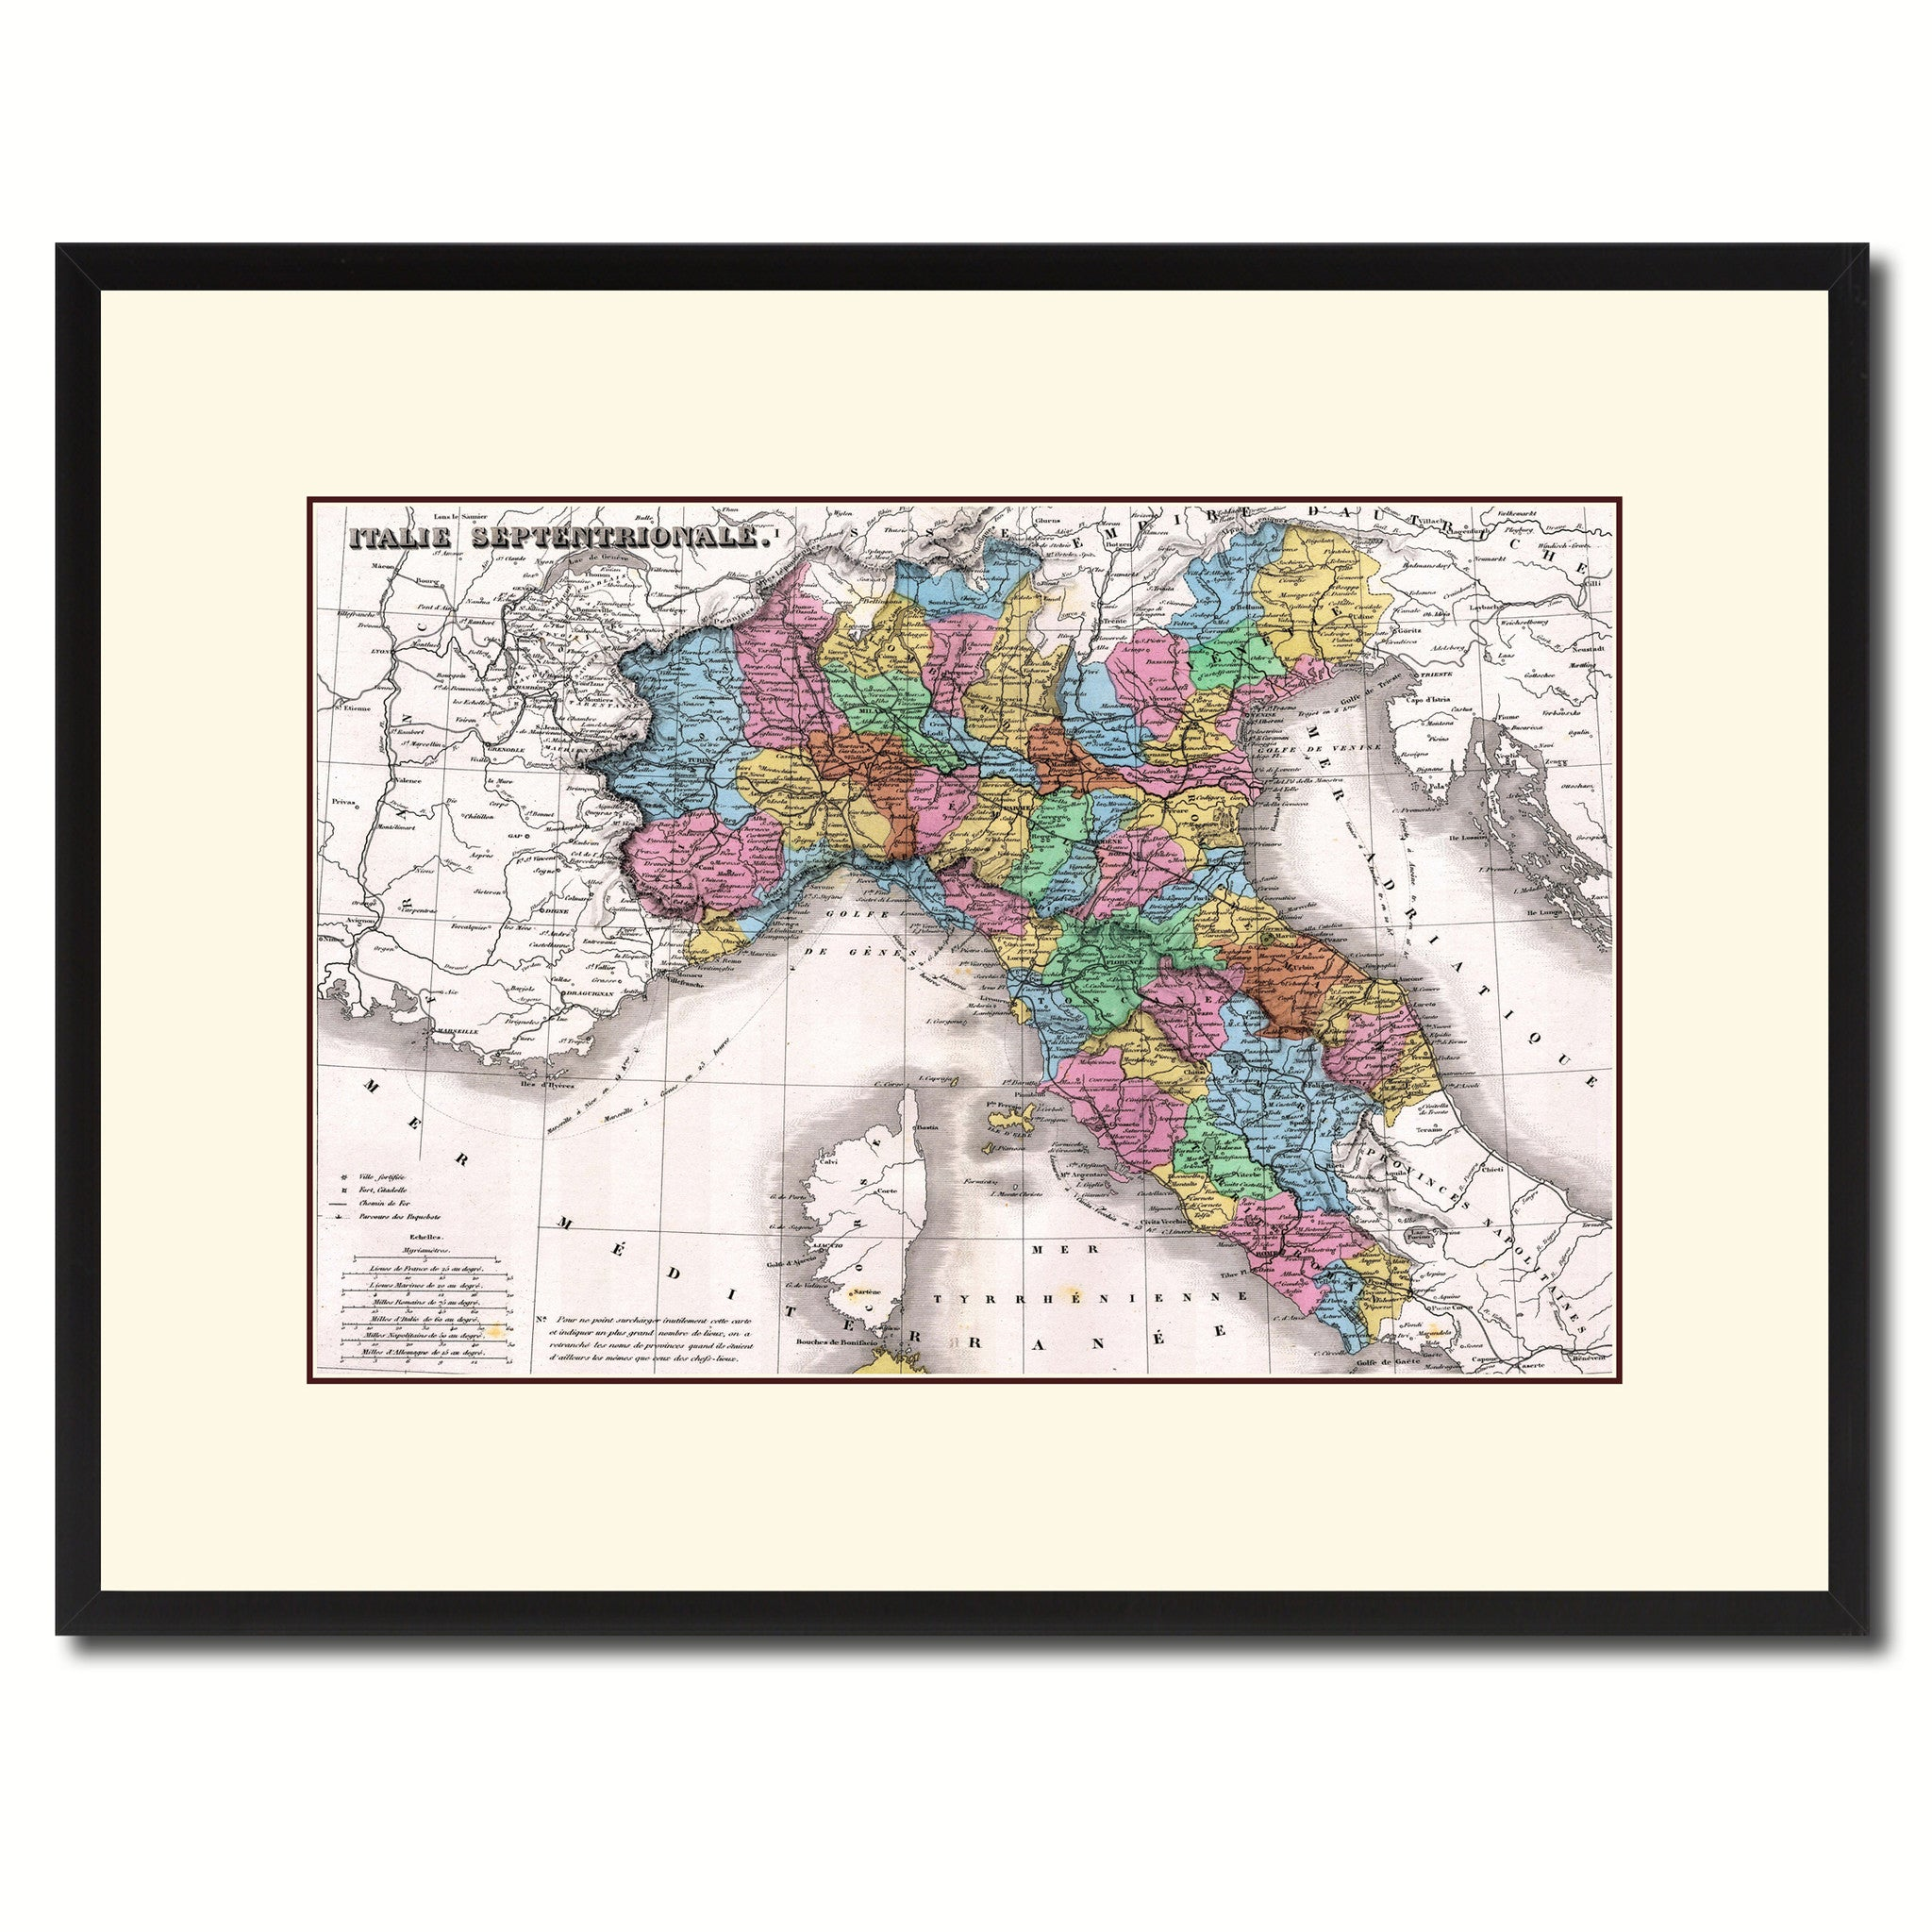 Italy Map Wall Art.North Italy Vintage Antique Map Wall Art Bedroom Home Decor Gift